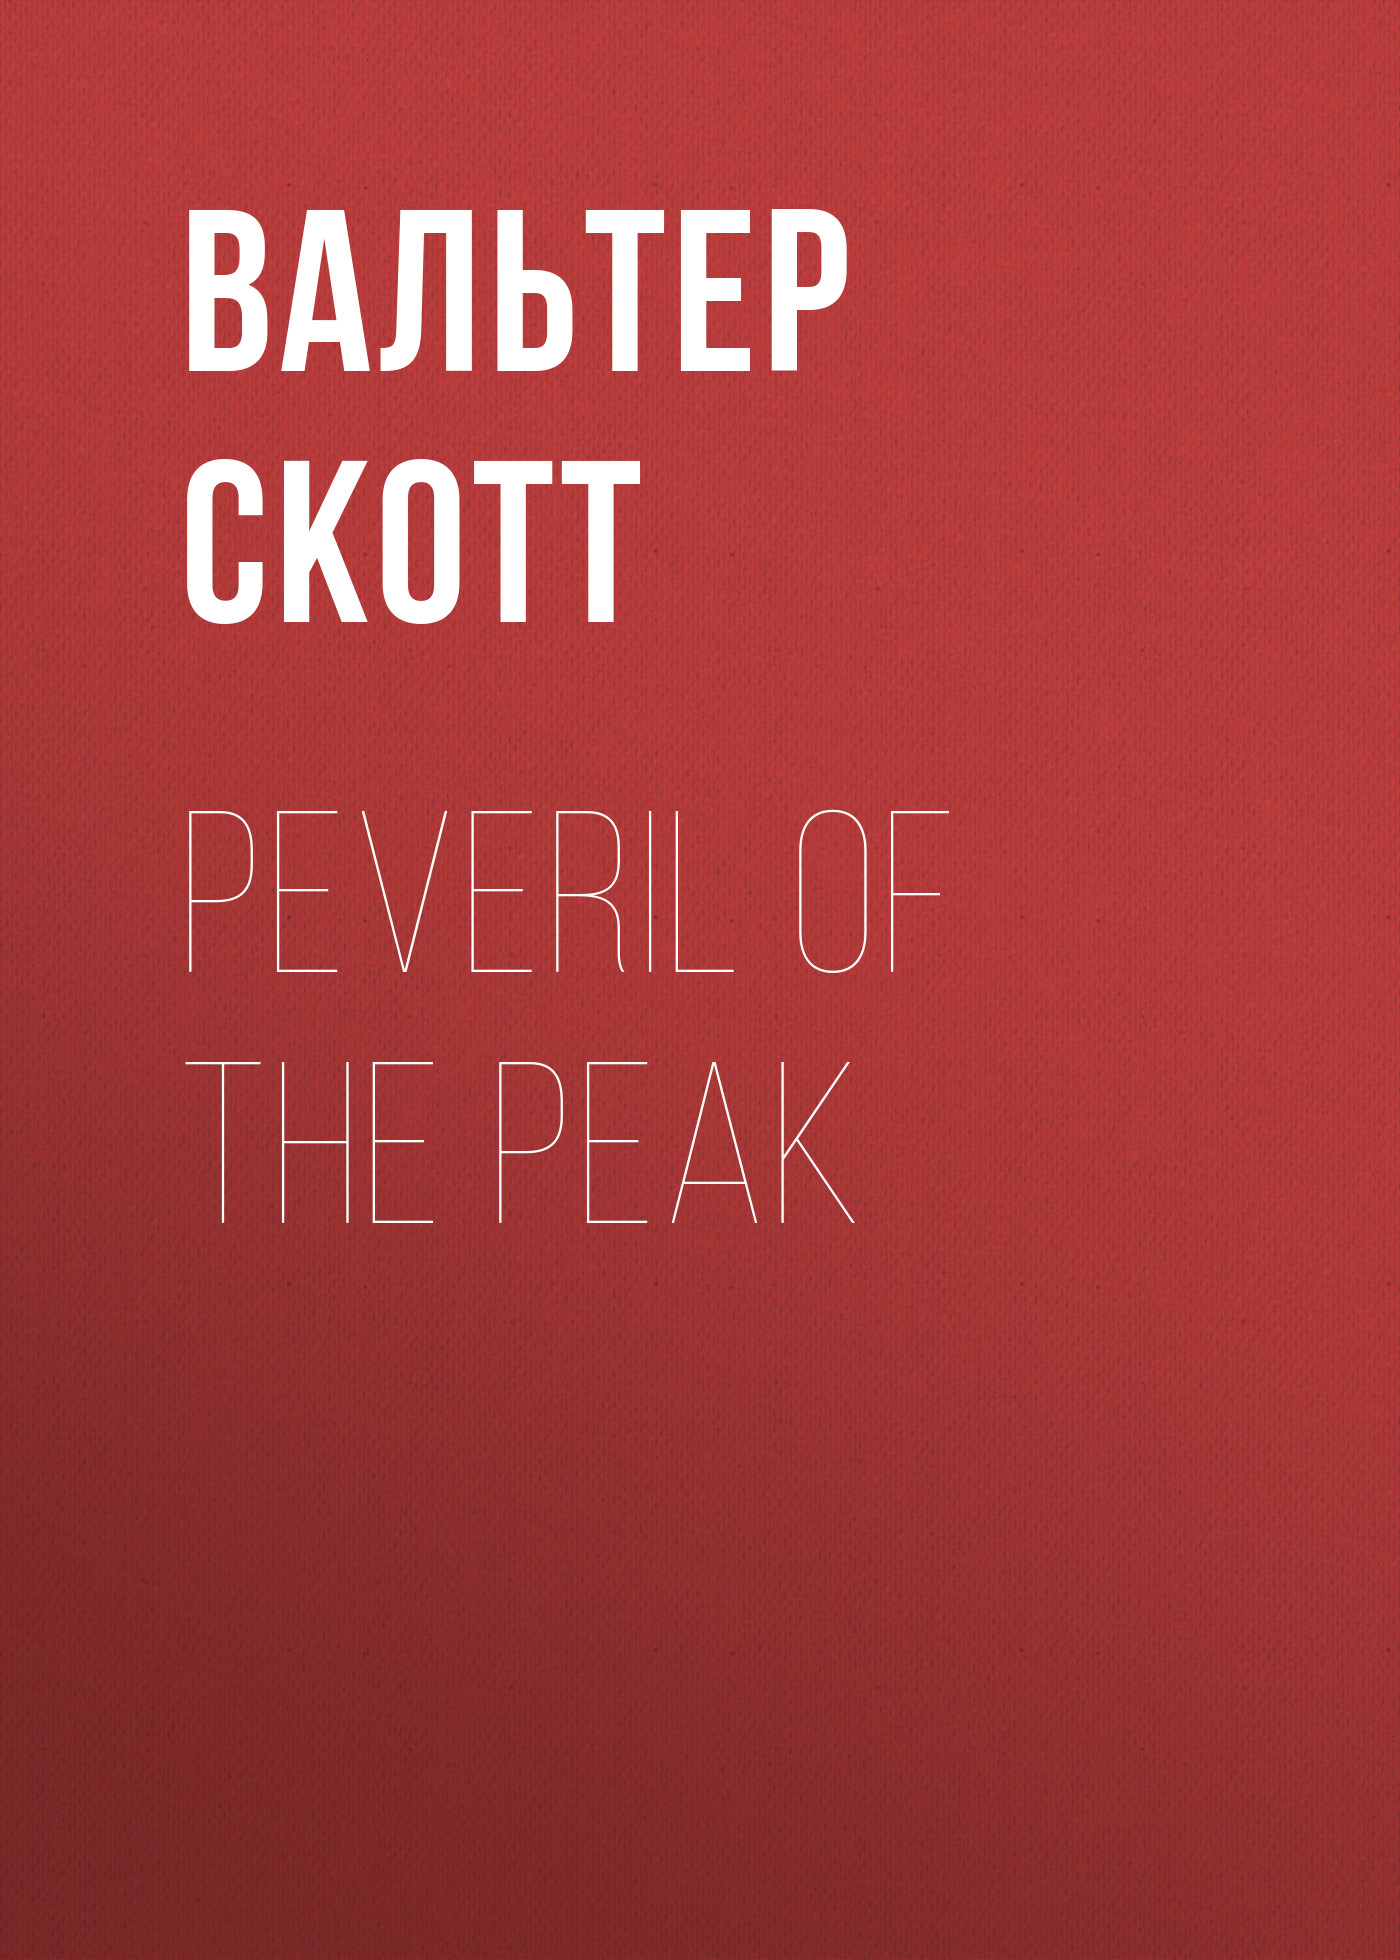 Вальтер Скотт Peveril of the Peak вальтер скотт the bride of lammermoor